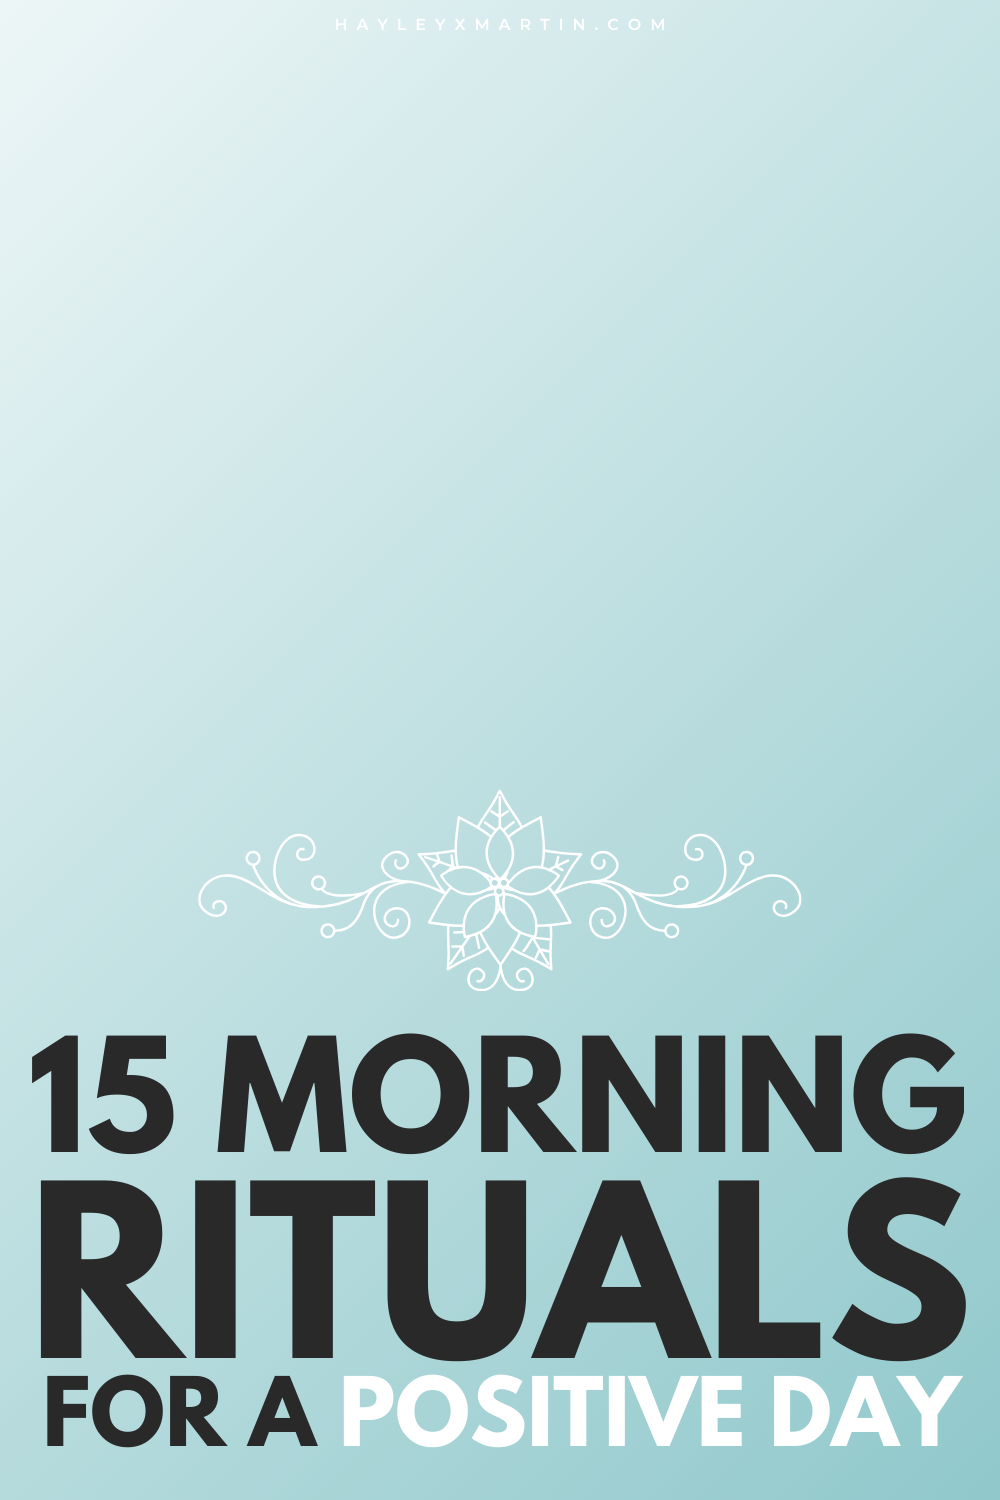 15 morning rituals for a positive day - hayleyxmartin